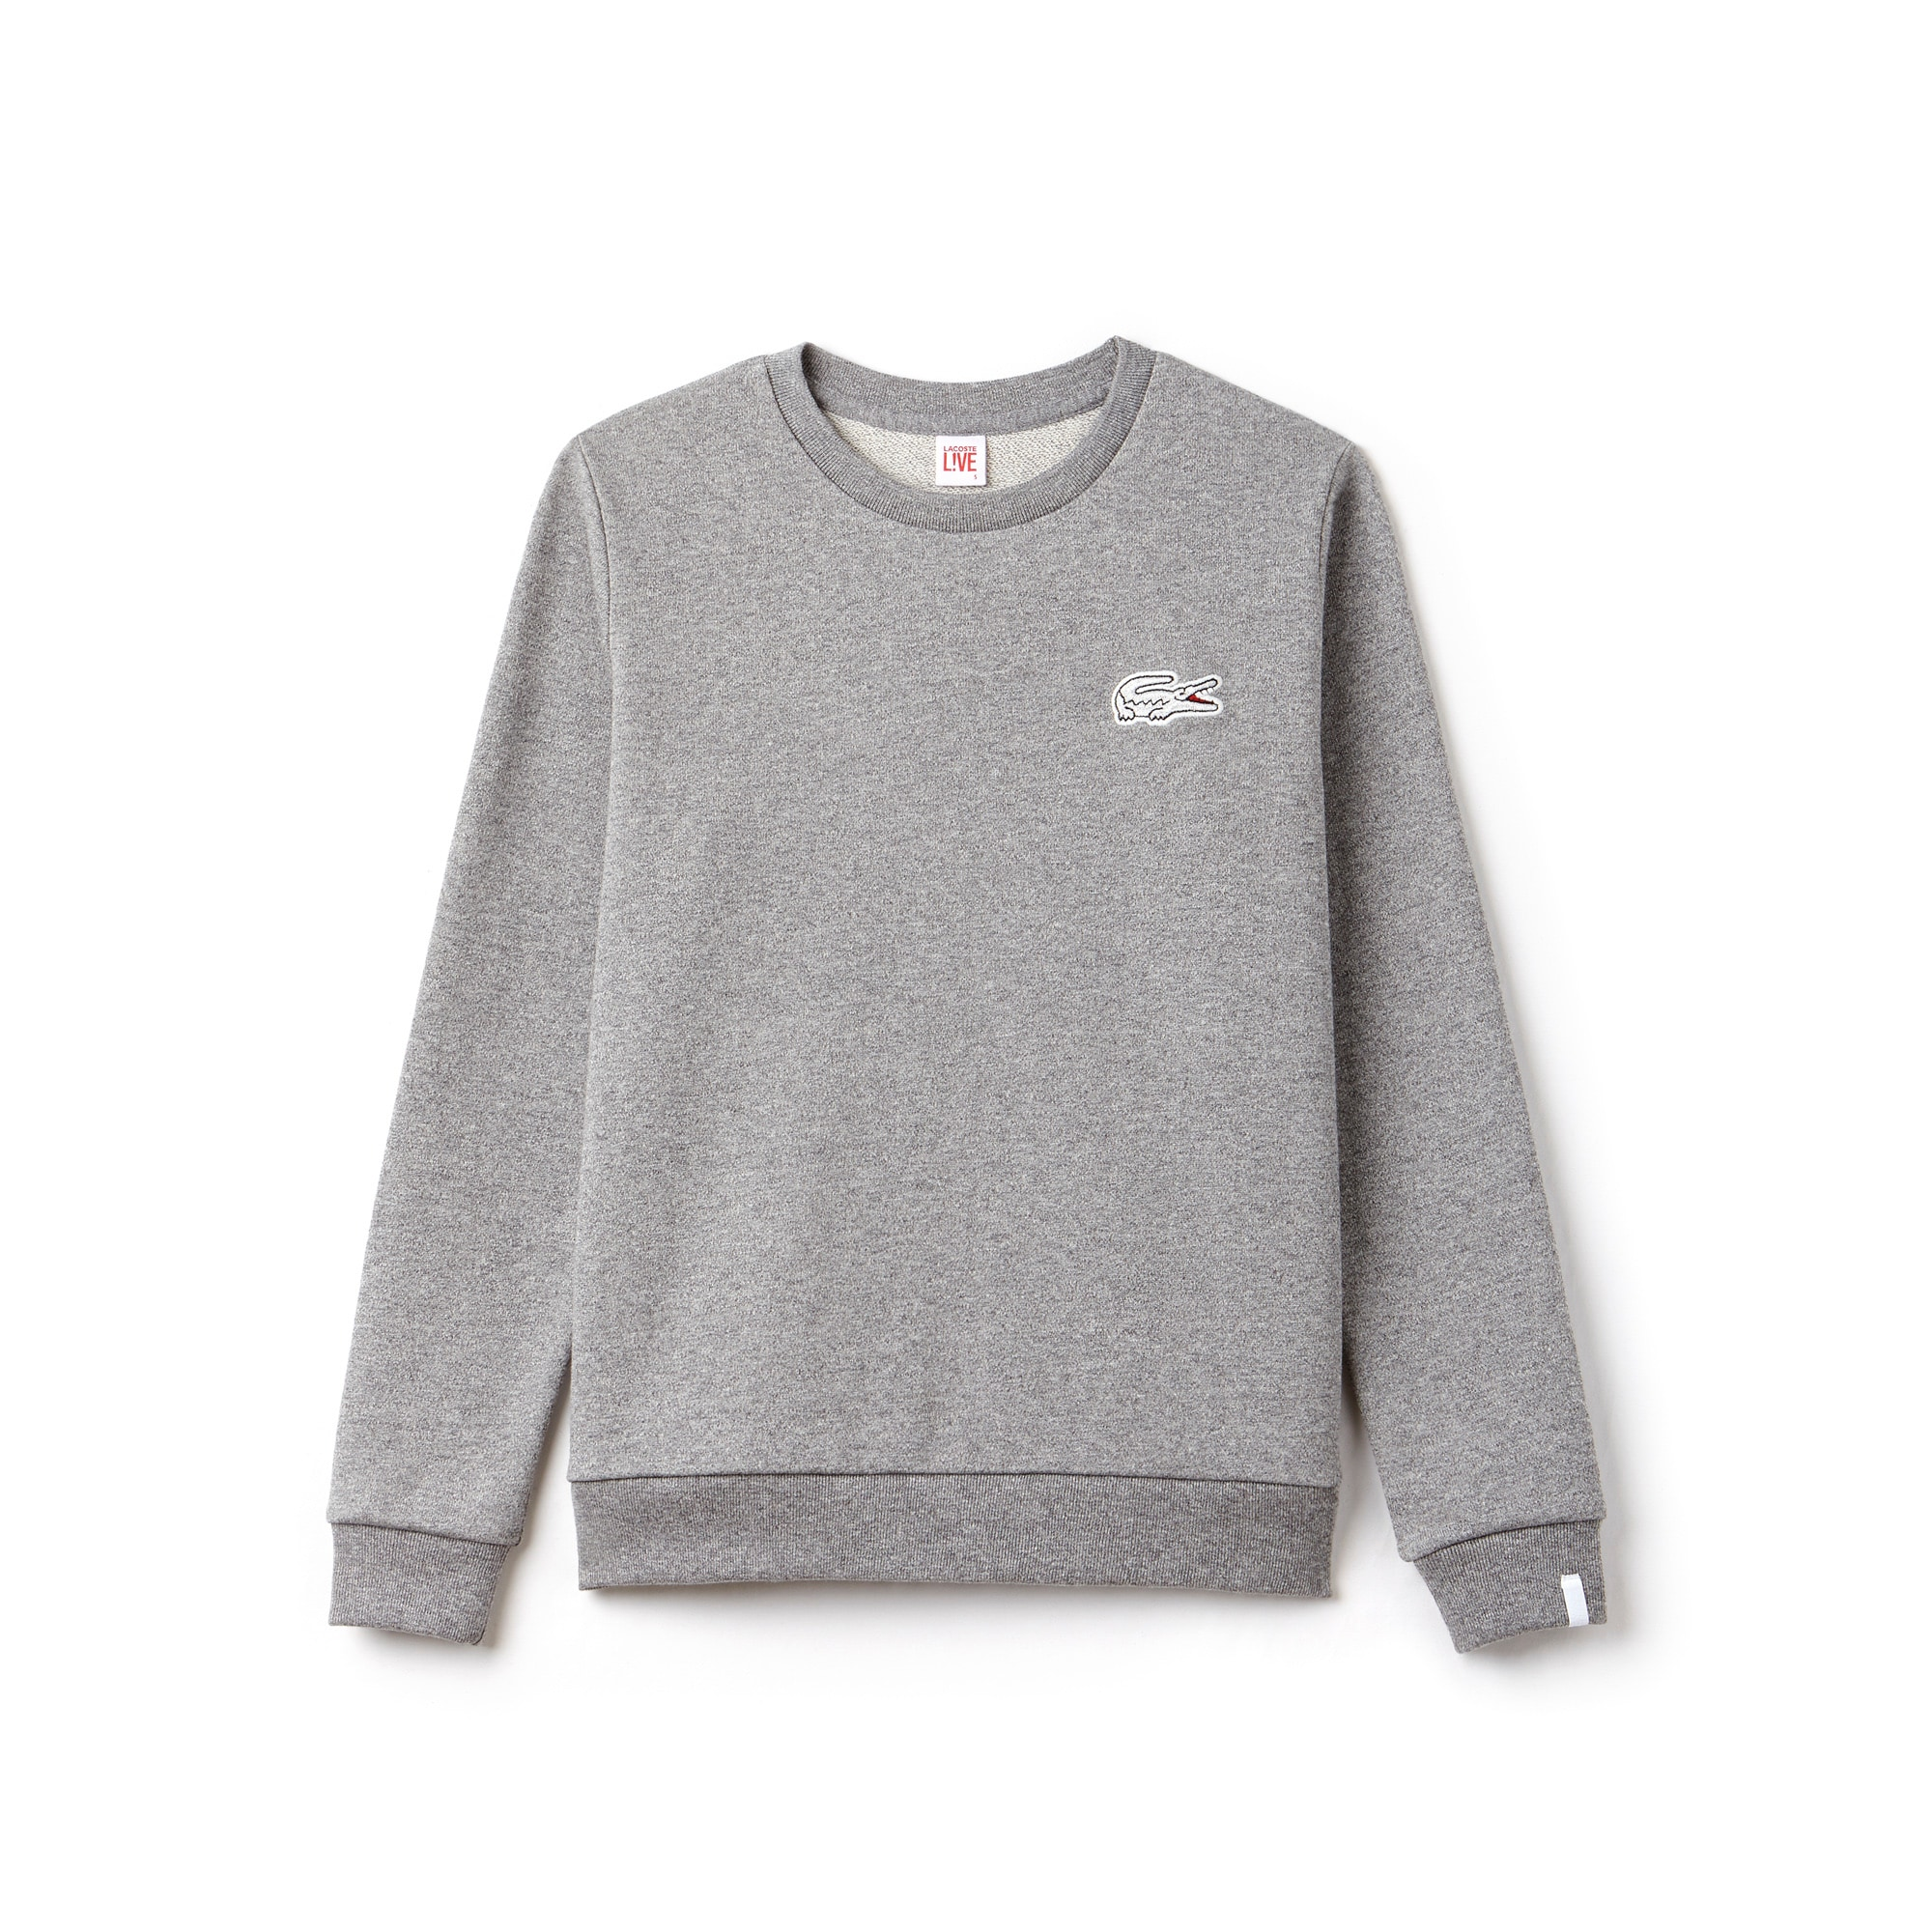 Women's Lacoste LIVE Oversized Crocodile Fleece Sweatshirt